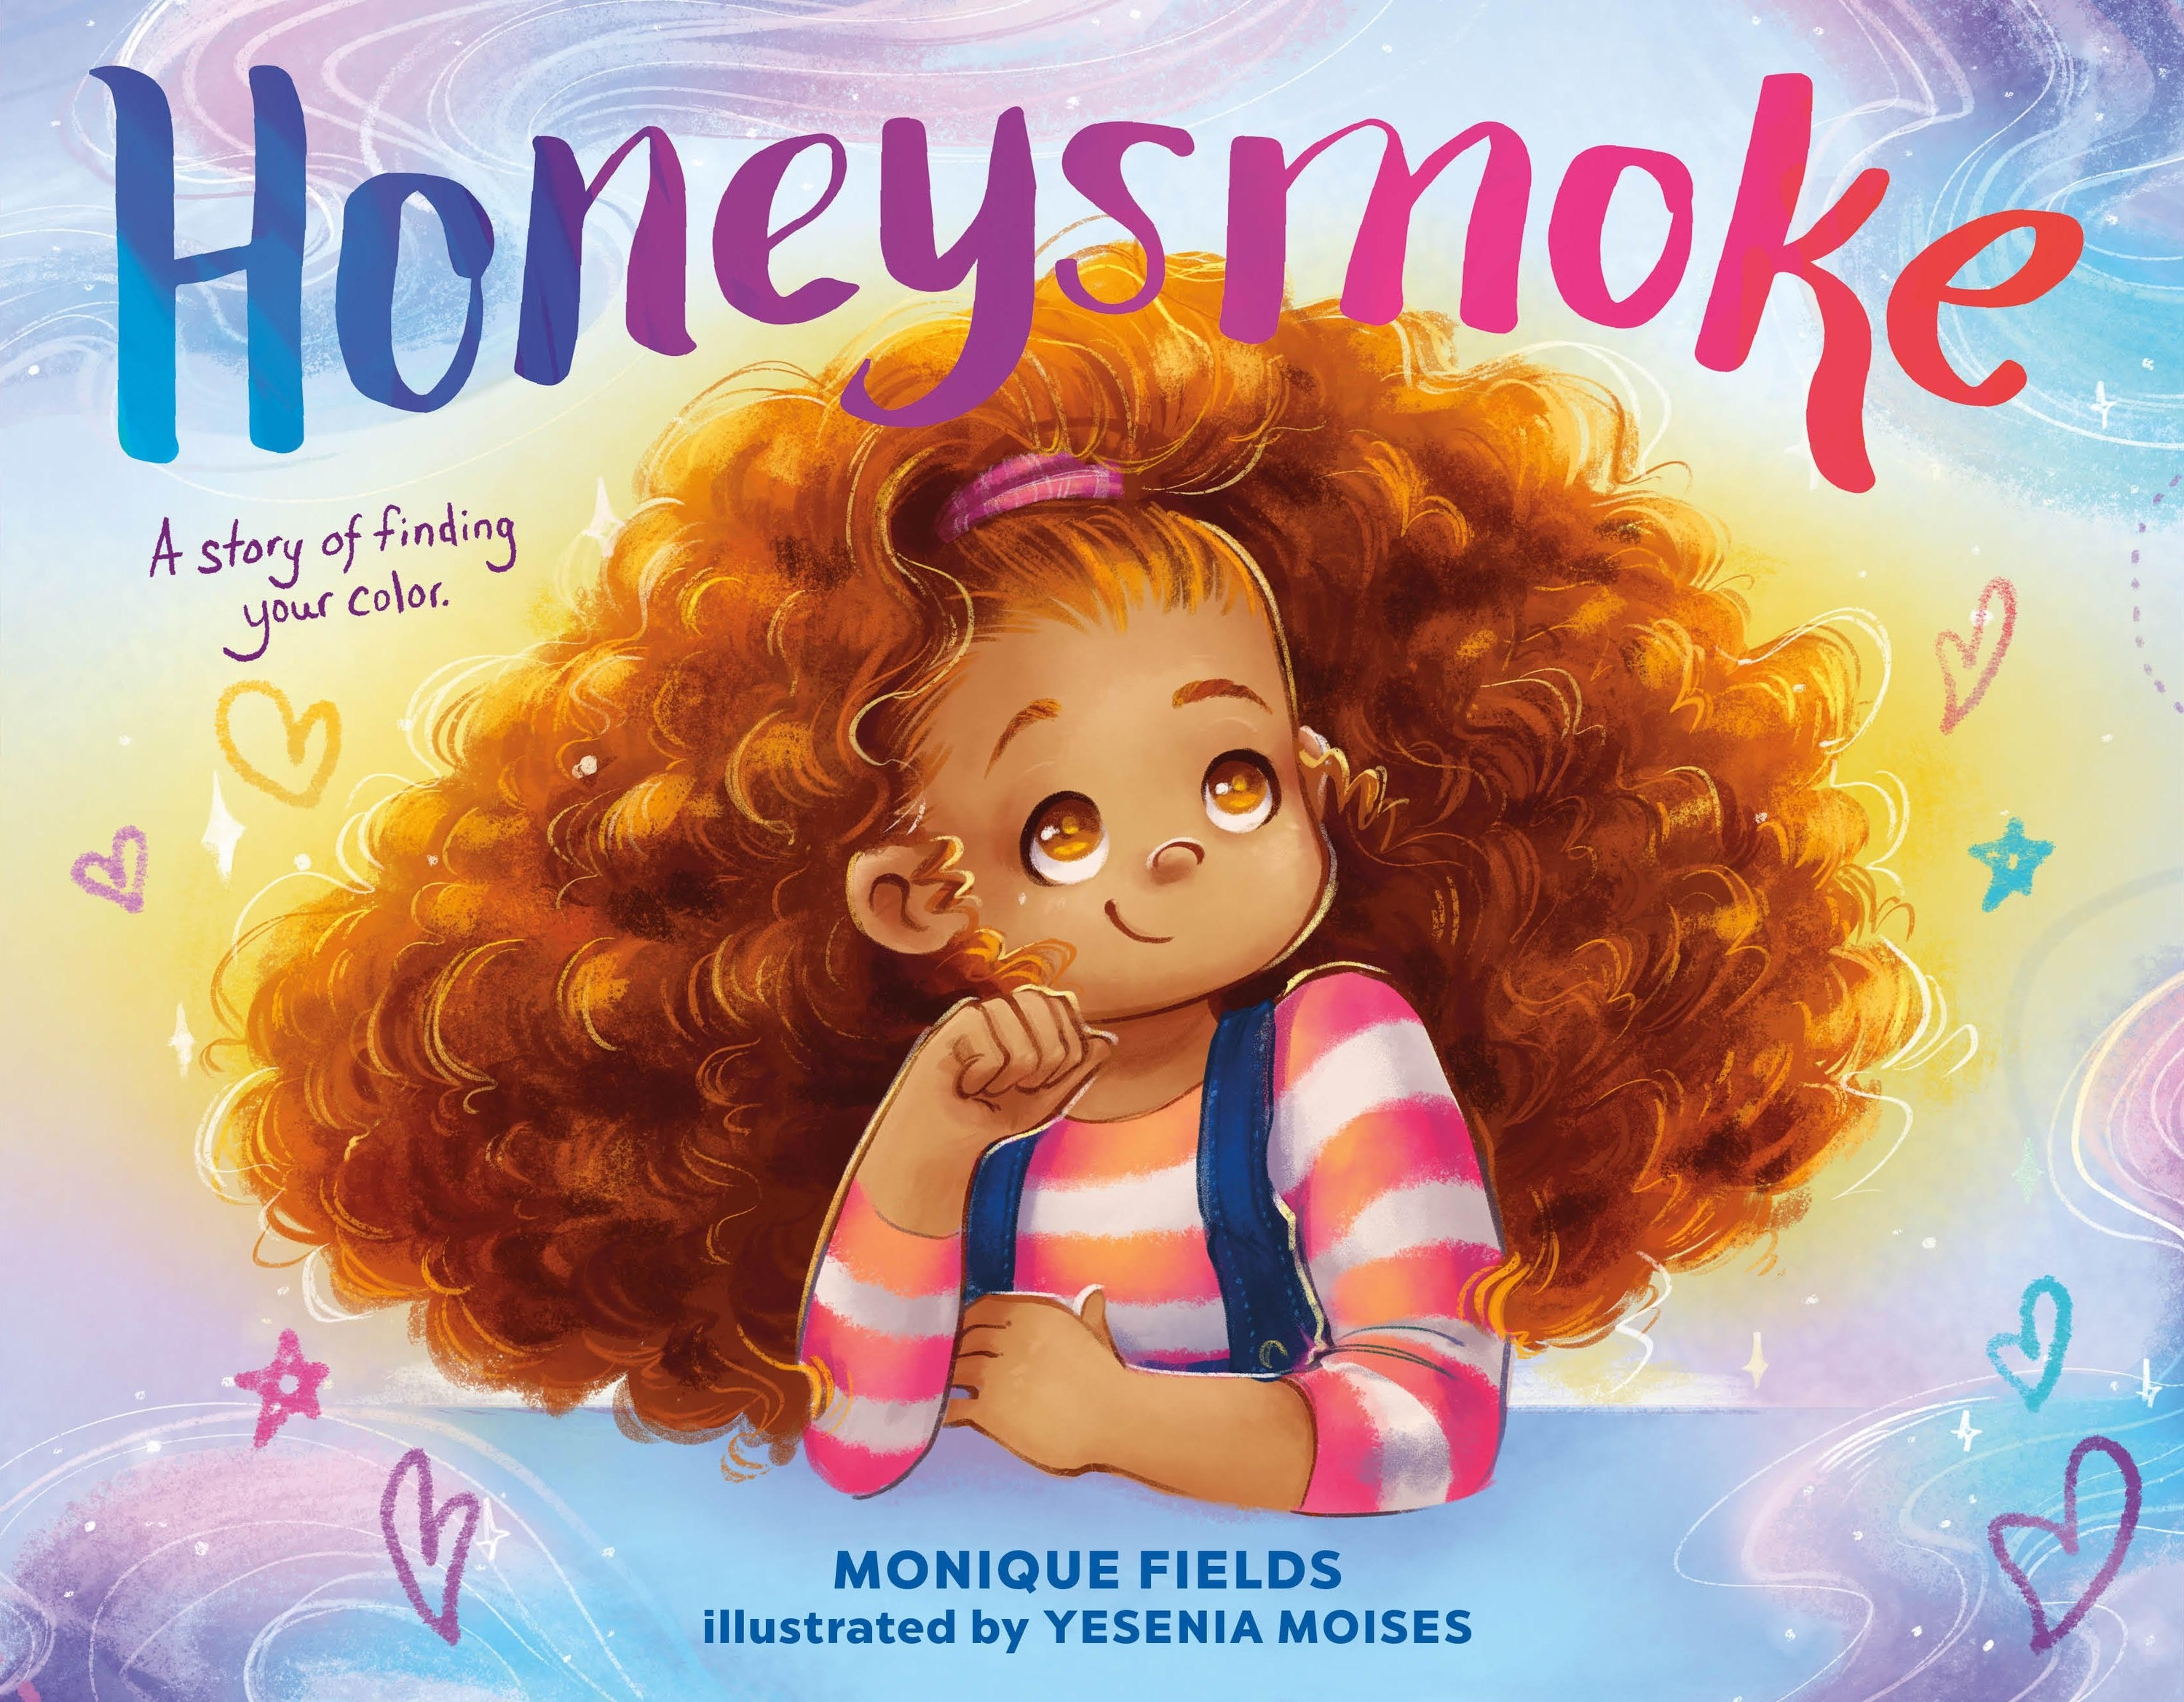 The book cover featuring a young girl with big curly hair looking off into the distance